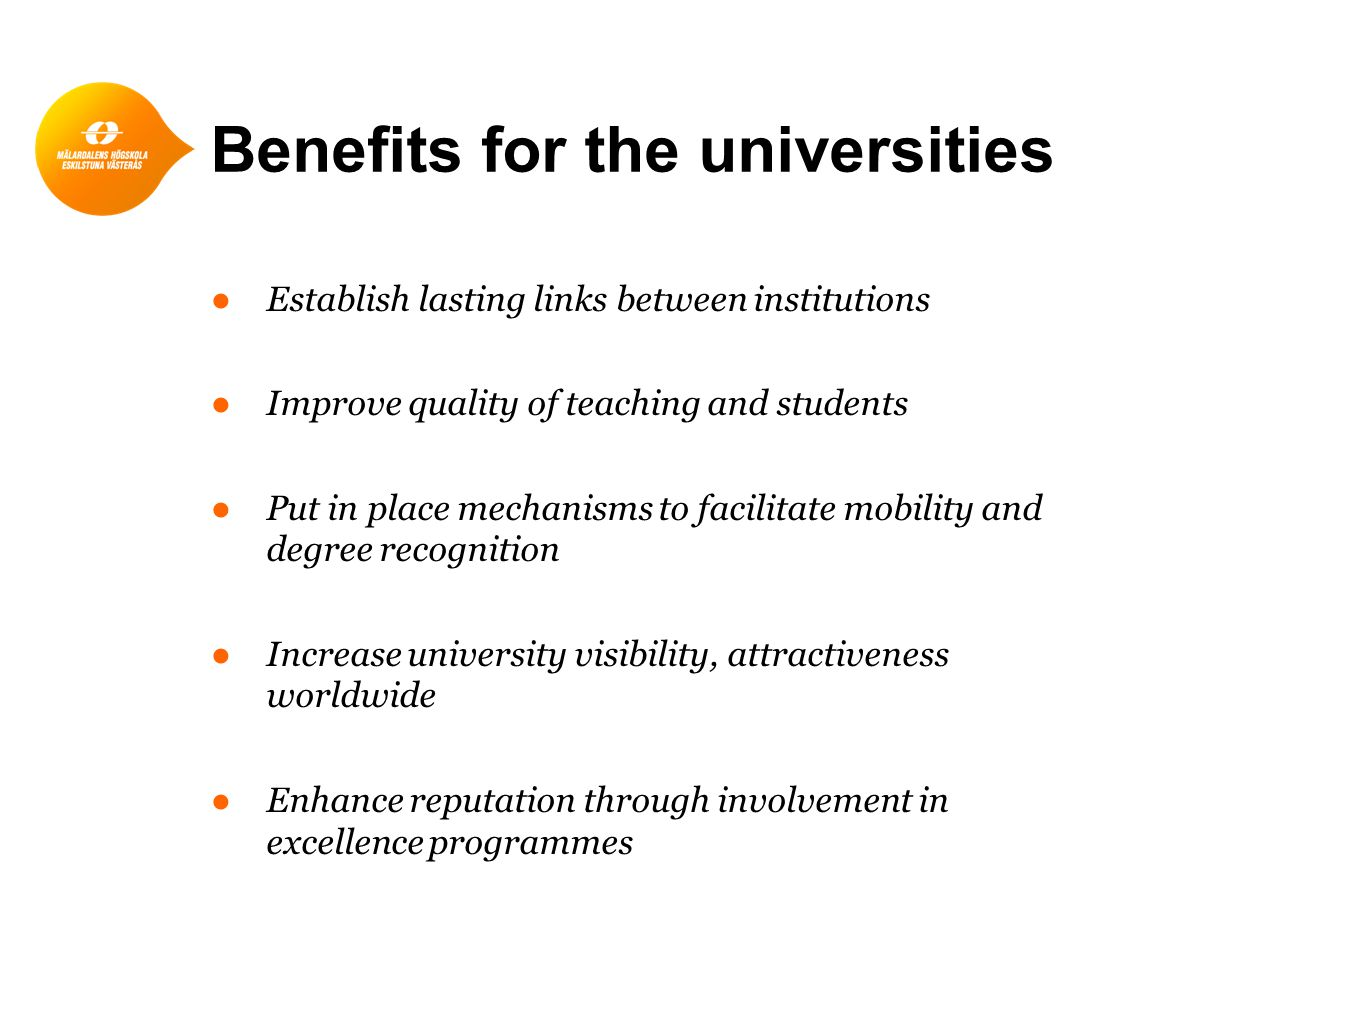 Benefits for the universities ●Establish lasting links between institutions ●Improve quality of teaching and students ●Put in place mechanisms to facilitate mobility and degree recognition ●Increase university visibility, attractiveness worldwide ●Enhance reputation through involvement in excellence programmes